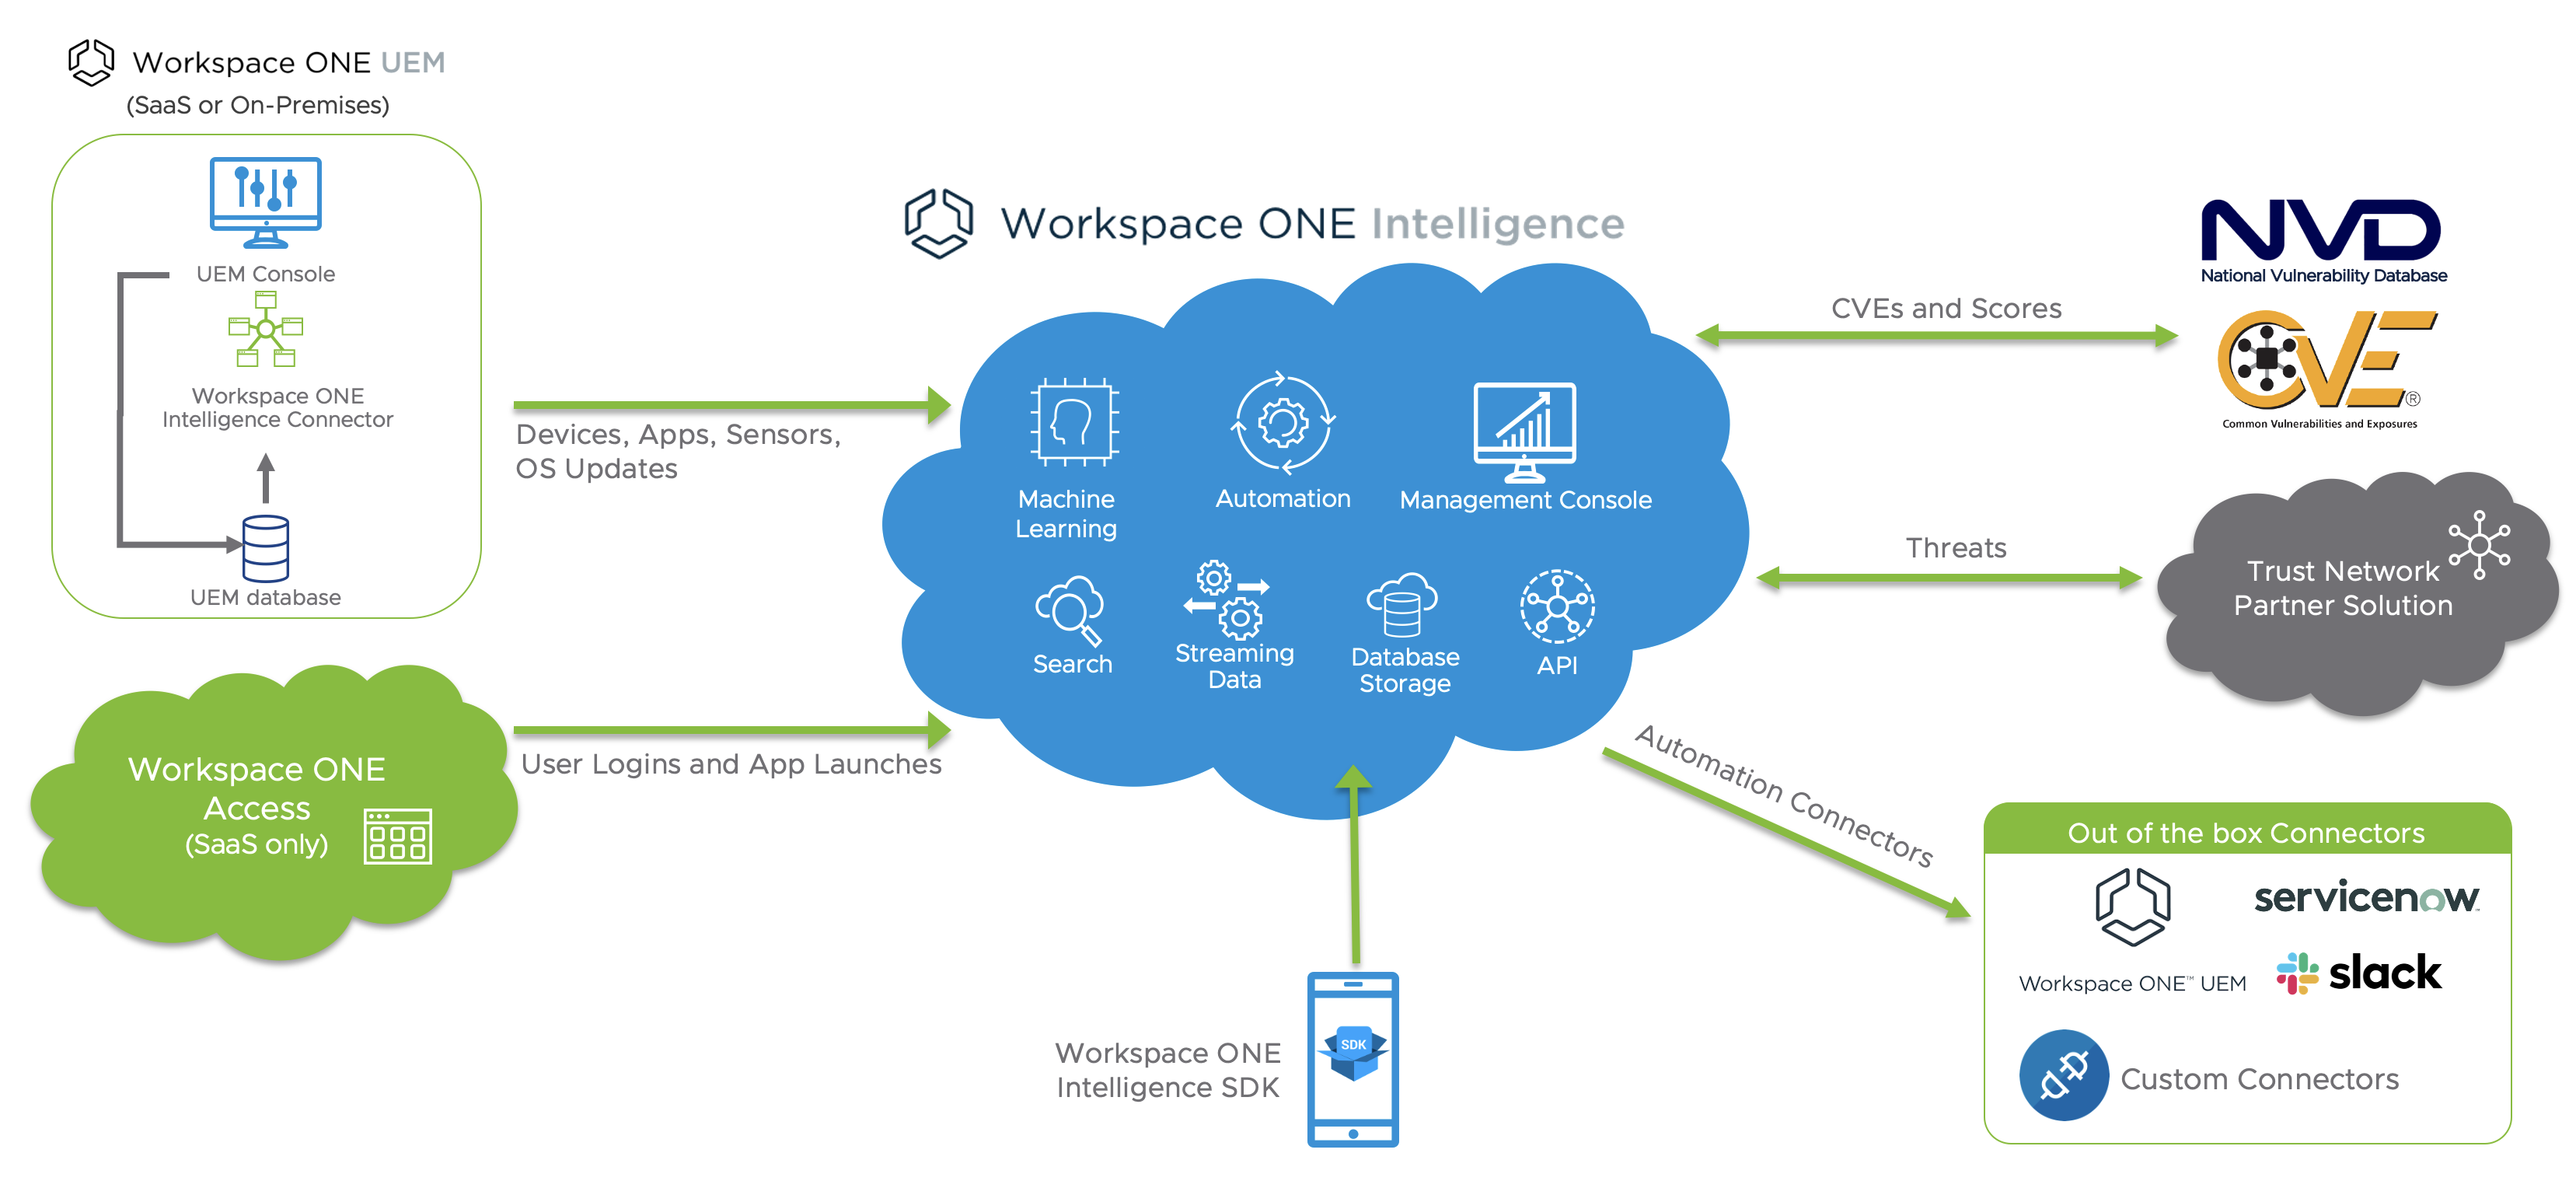 Workspace ONE Intelligence Data Sources